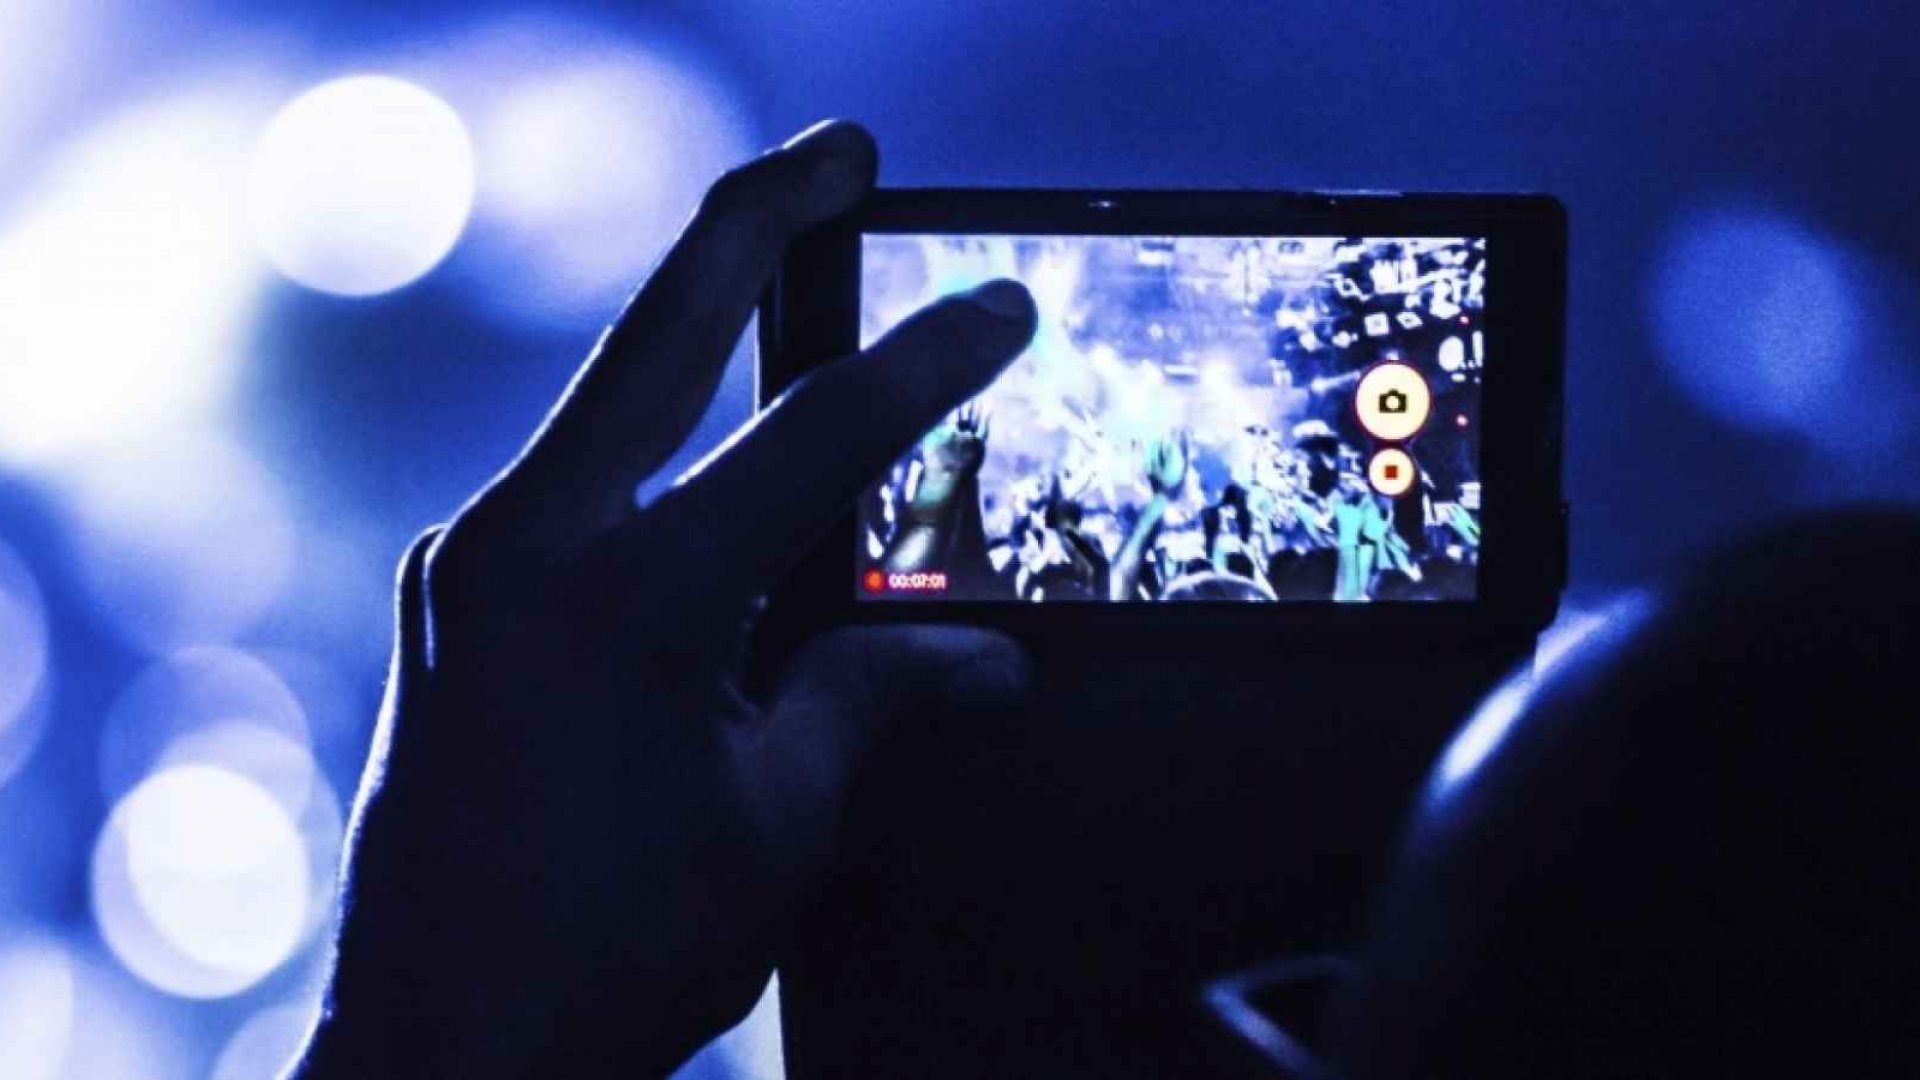 Facebook Takes the Next Step in the Livestream Revolution